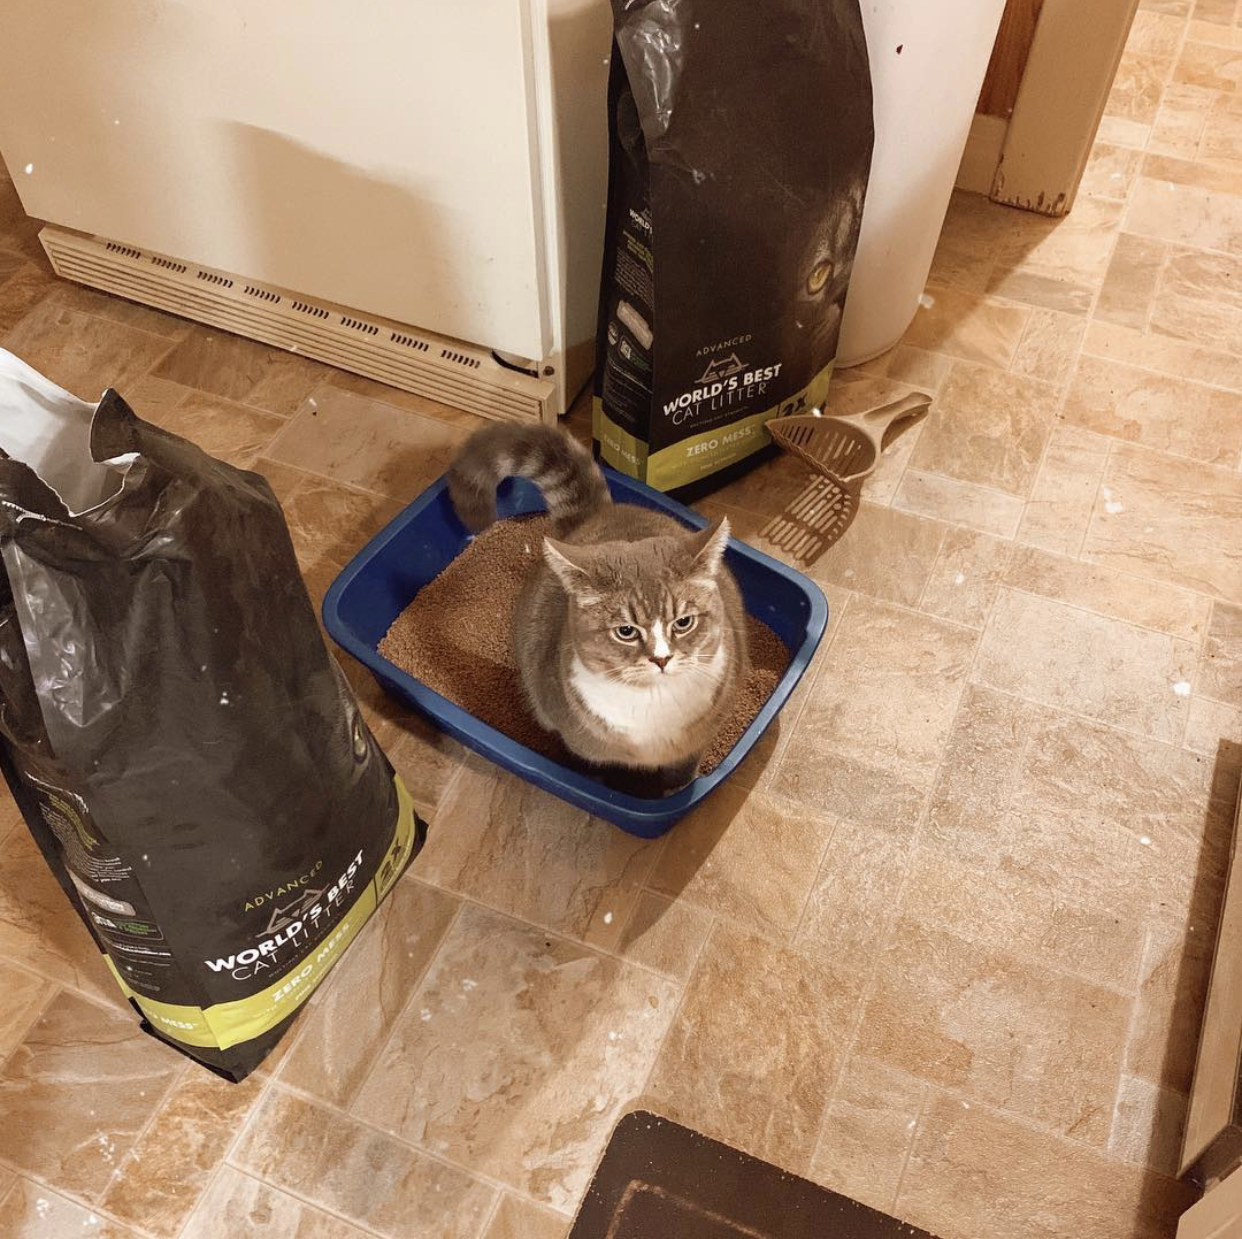 A cat is pooping in a litter box with brand new litter